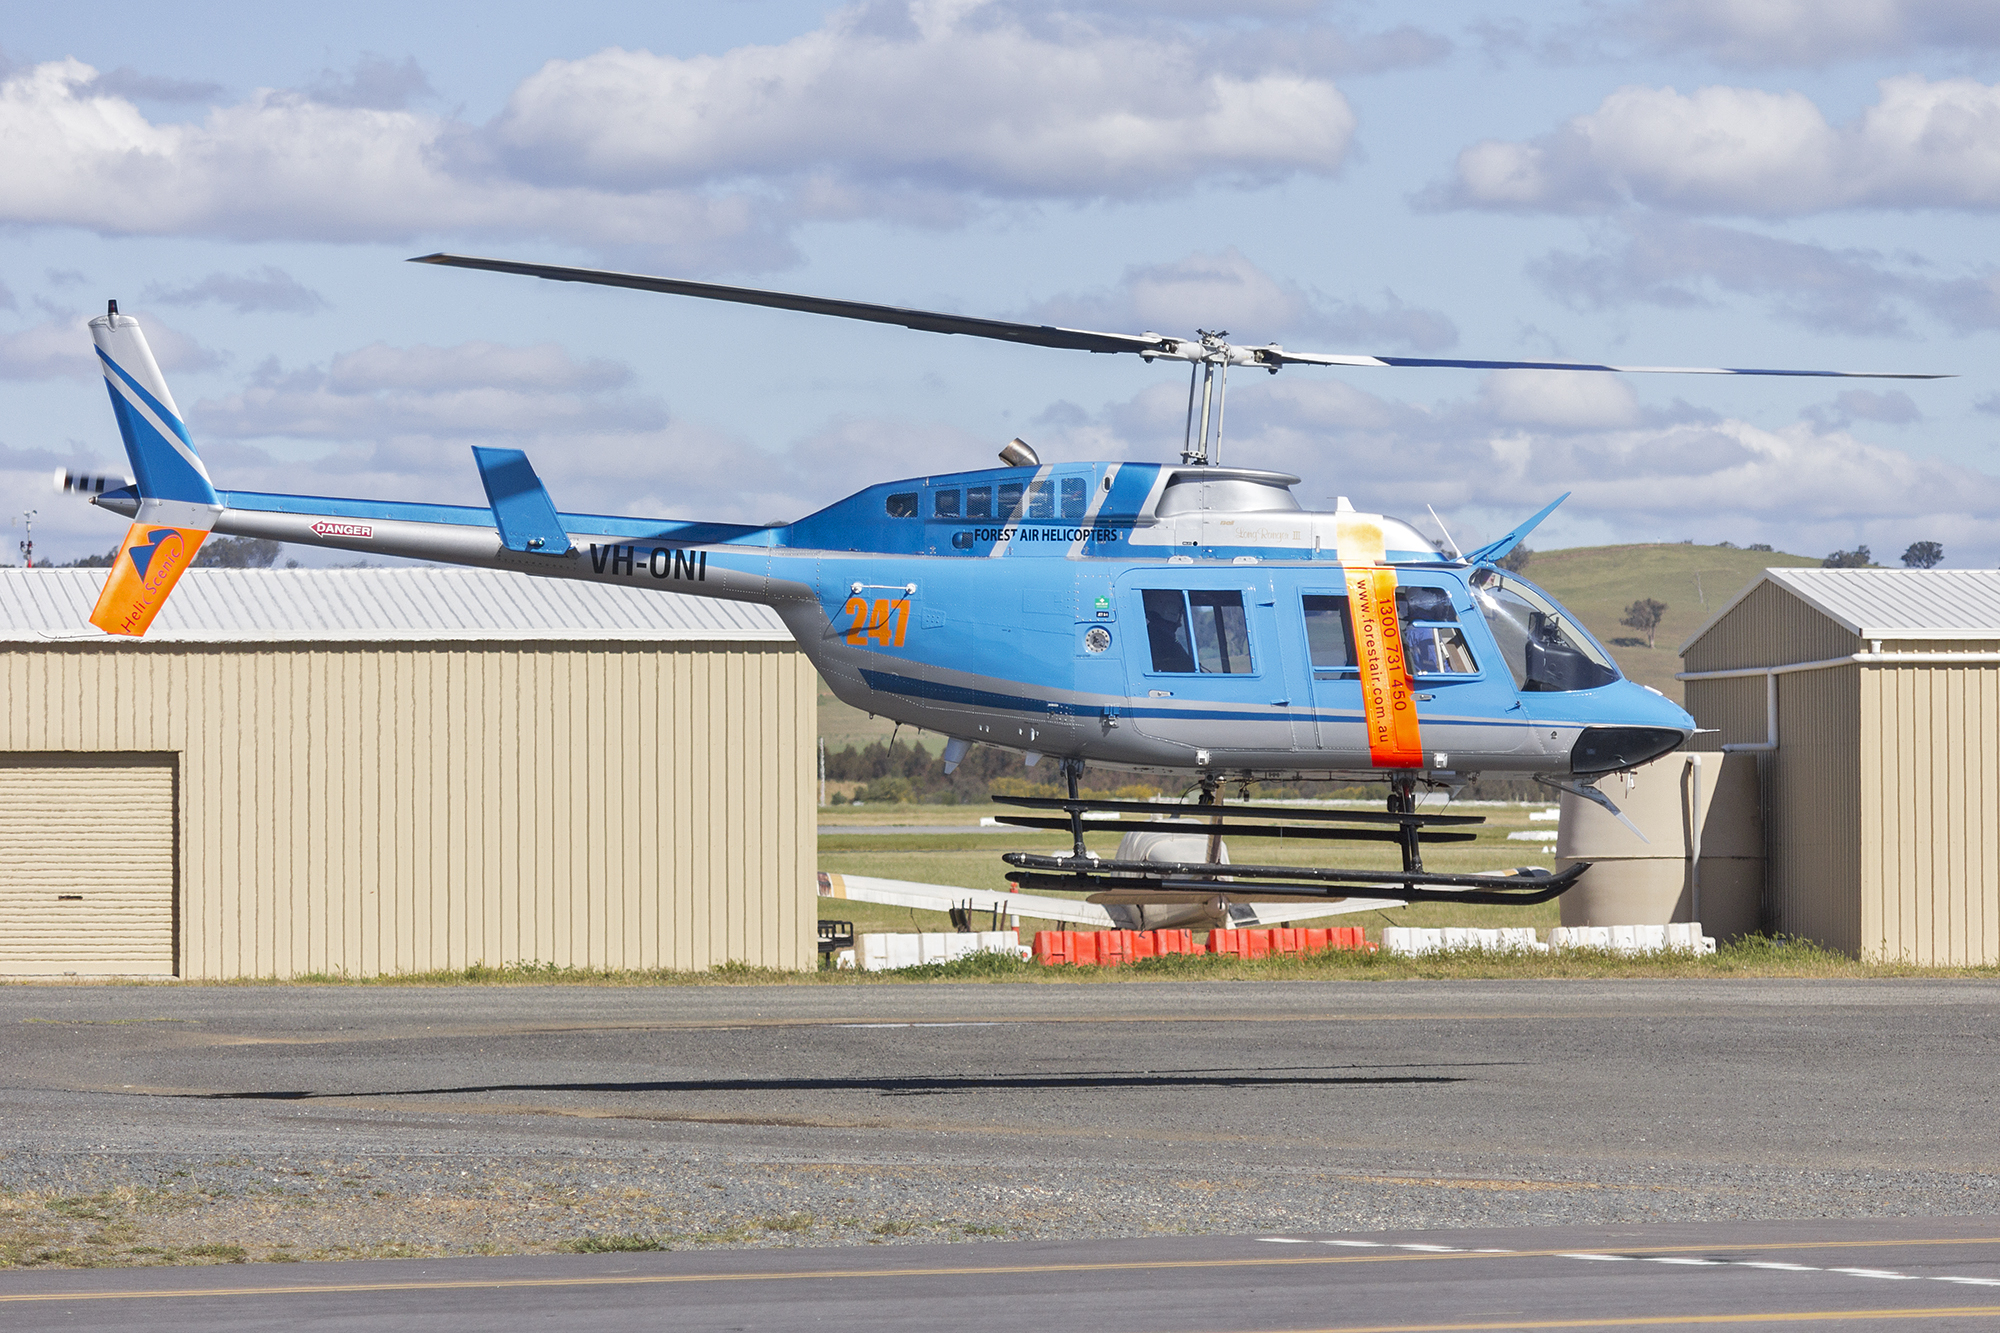 File:Forest Air Helicopters (VH-ONI) Bell 206L-3 LongRanger III